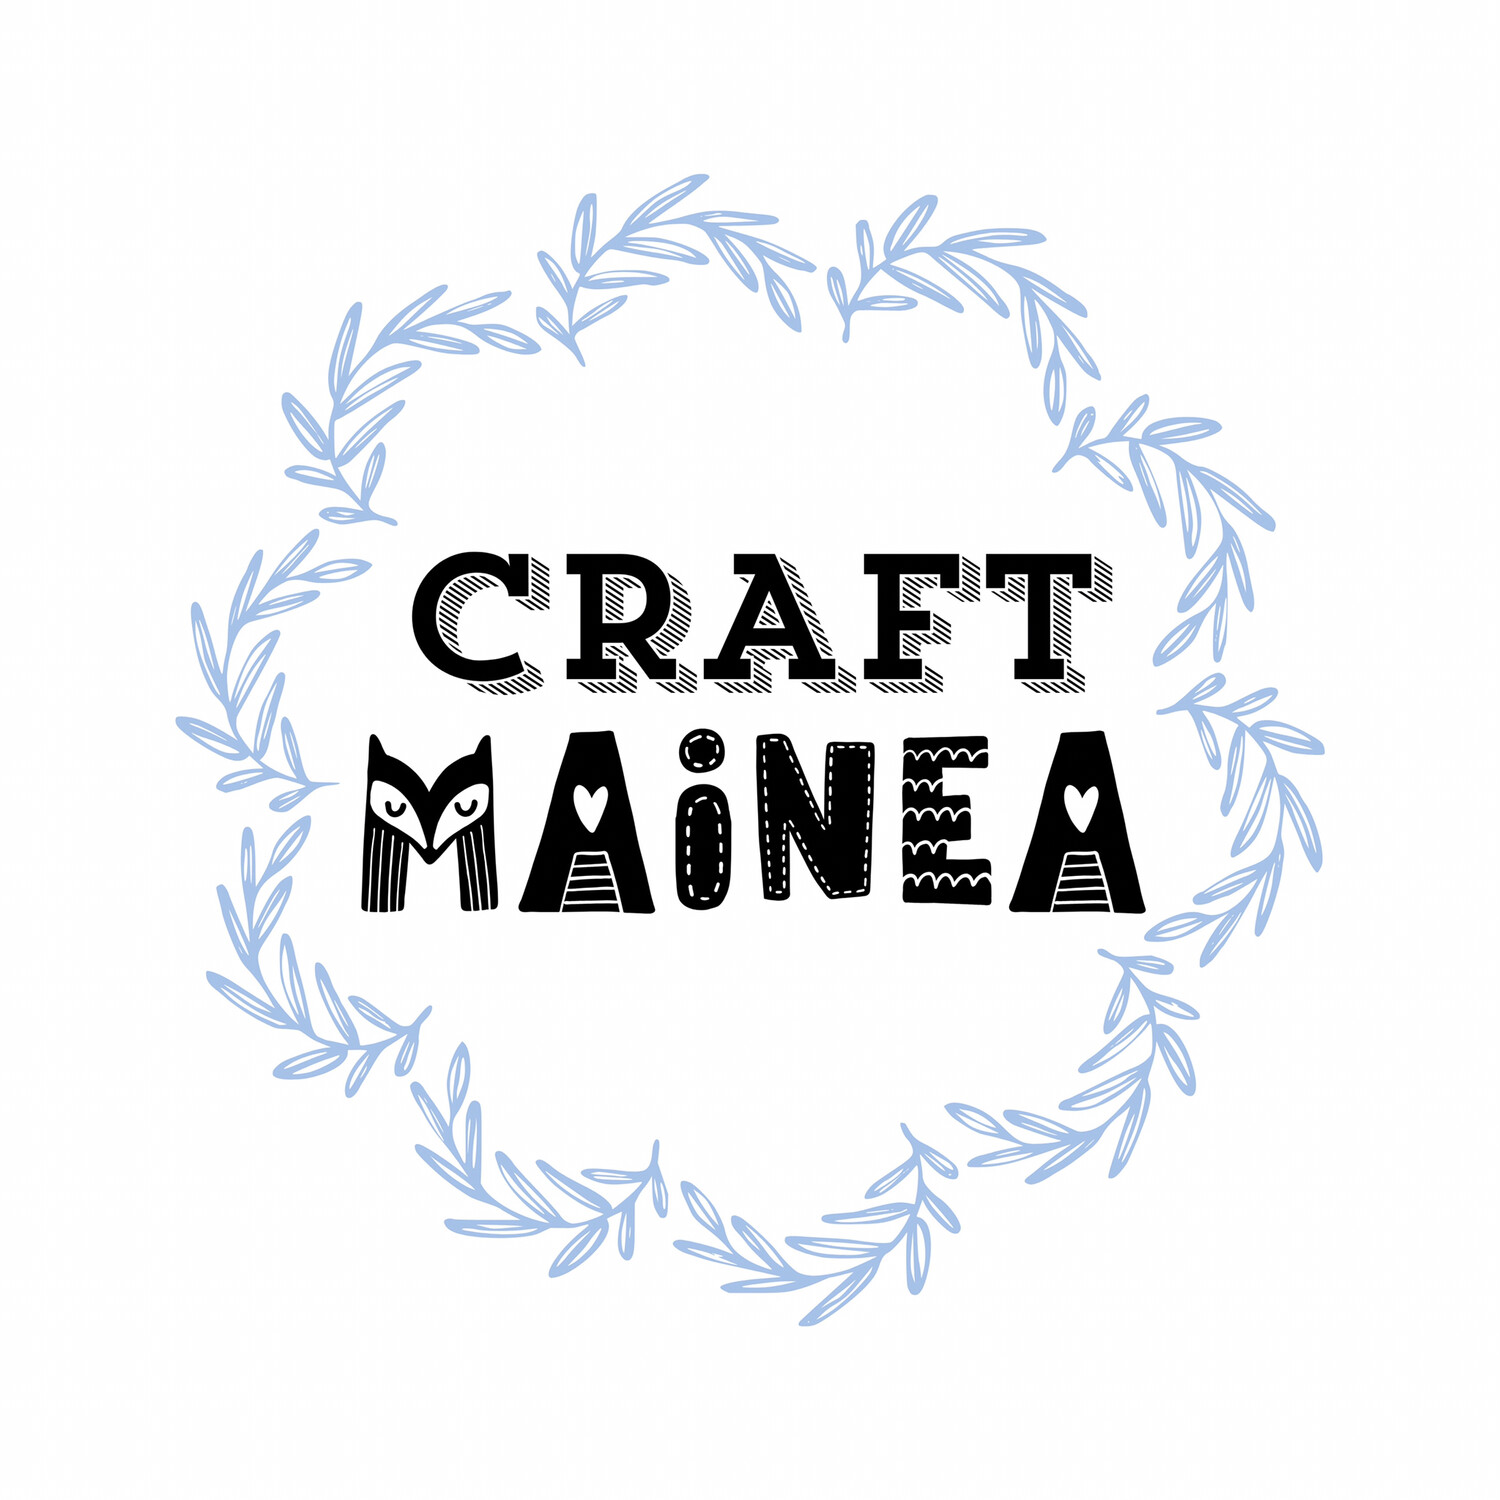 Craft Mainea 12'x12' Booth Rental